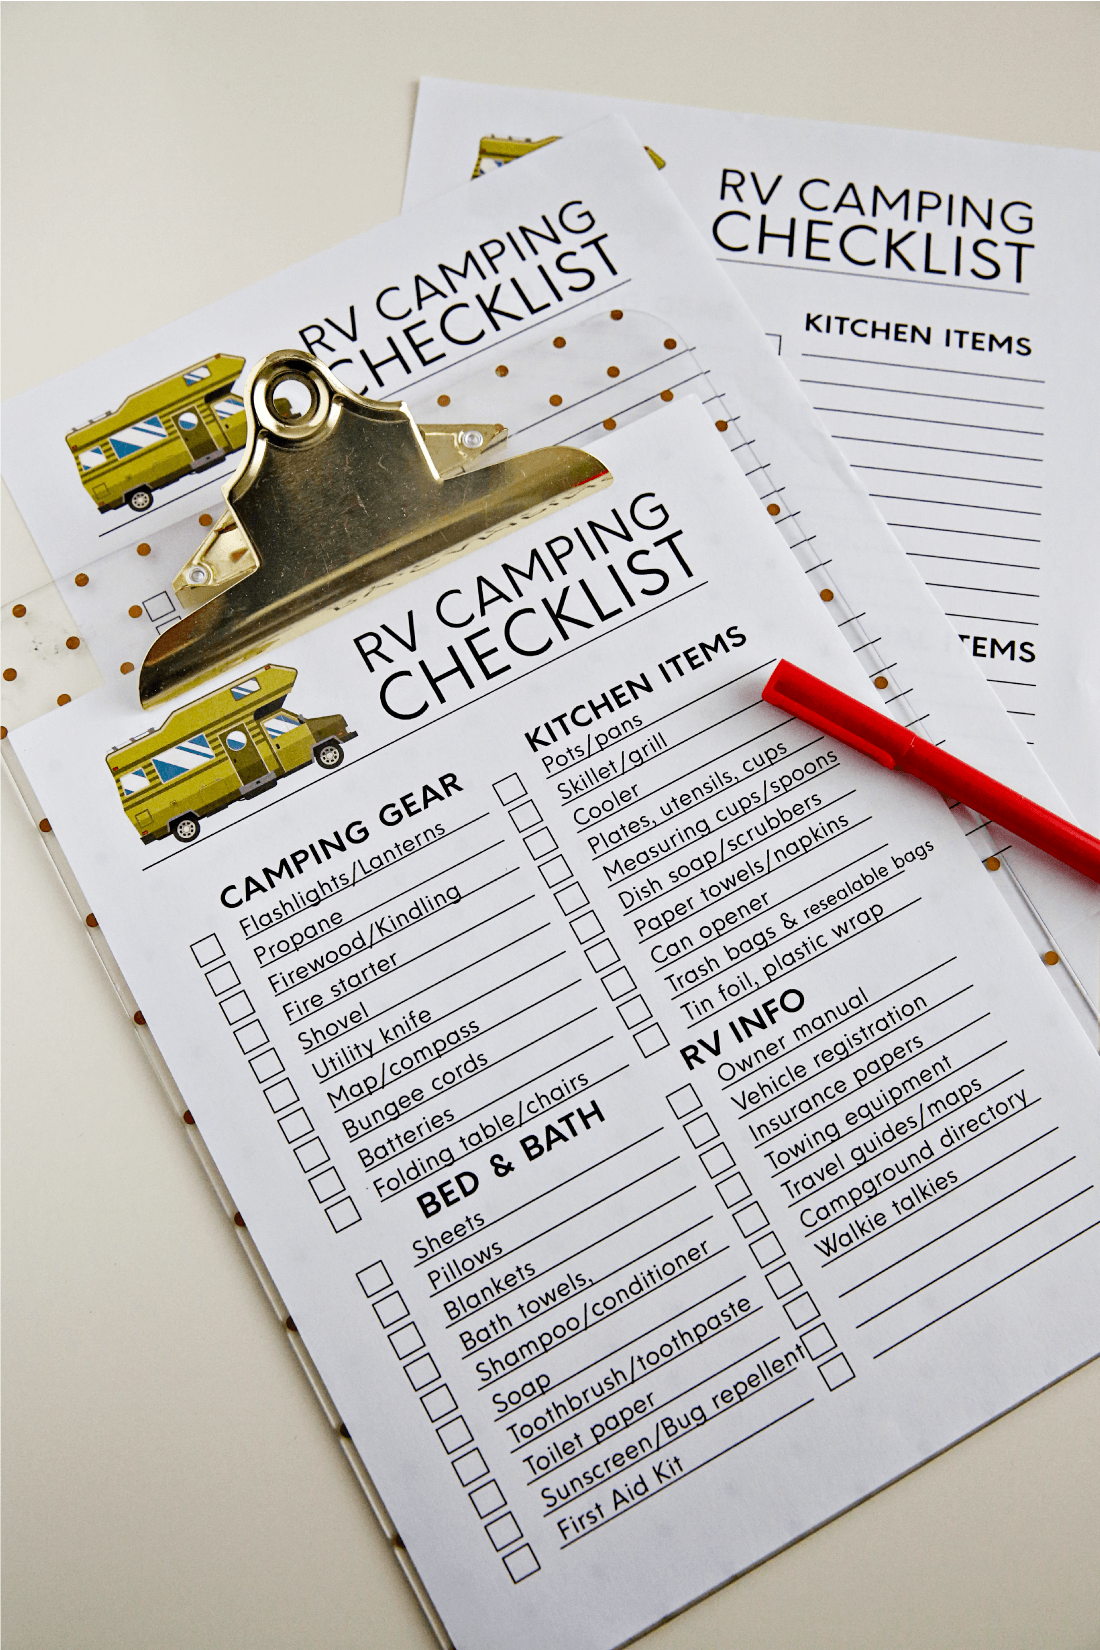 photograph regarding Printable Rv Setup Checklist named Printable RV Checklists